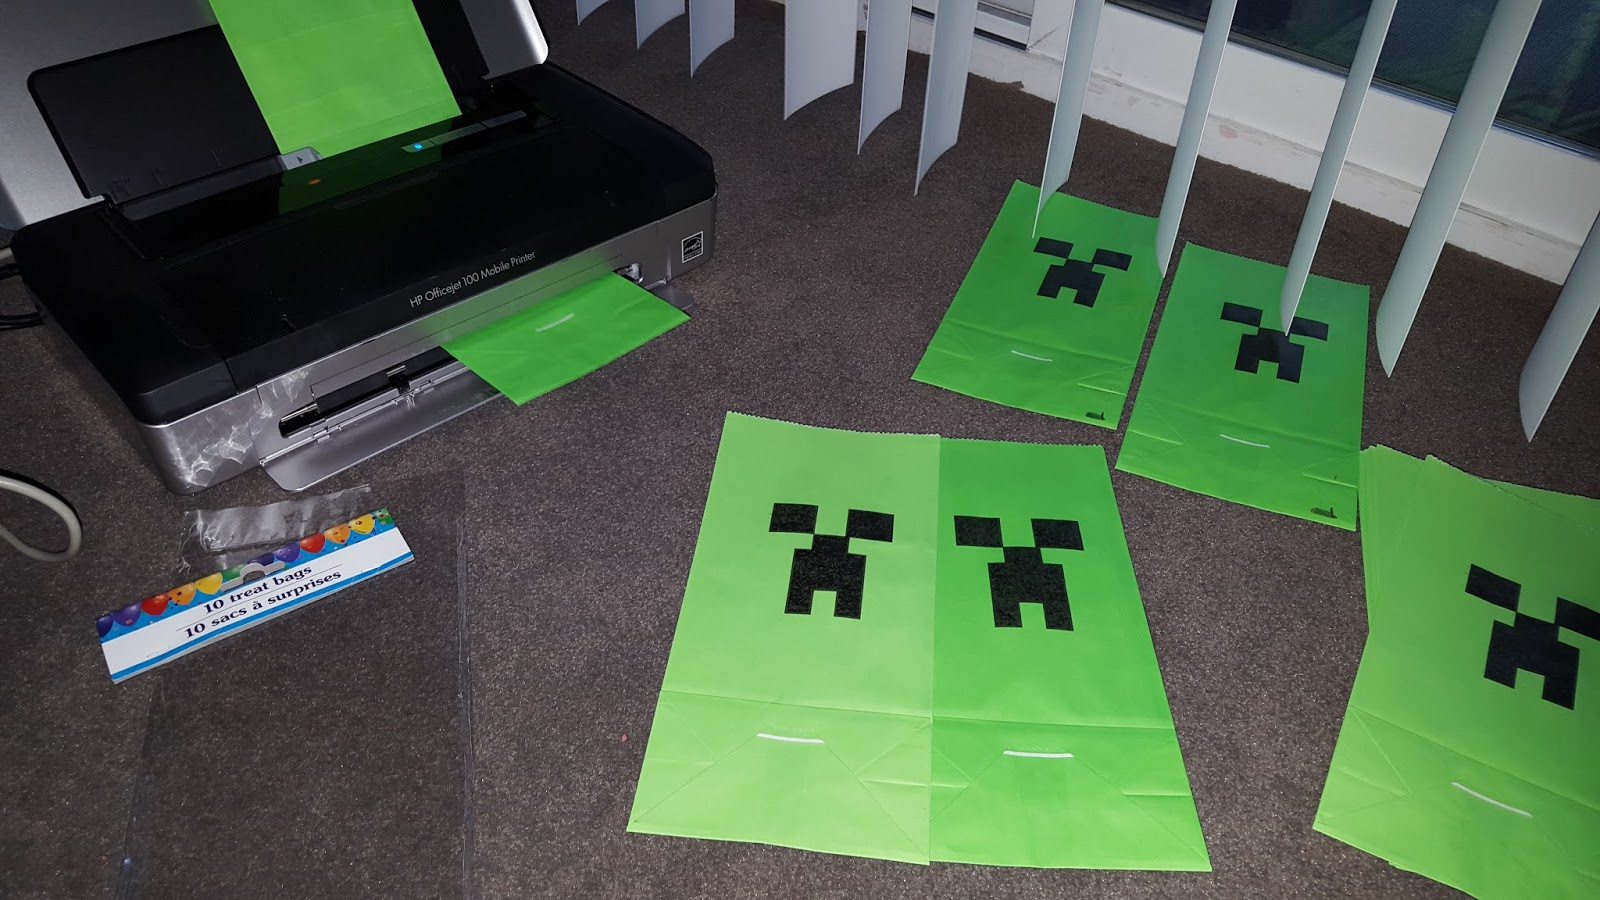 I Used A Template From Website Printable Minecraft Creeper Party Bags Where Step By Instructions For Creating These Are Posted